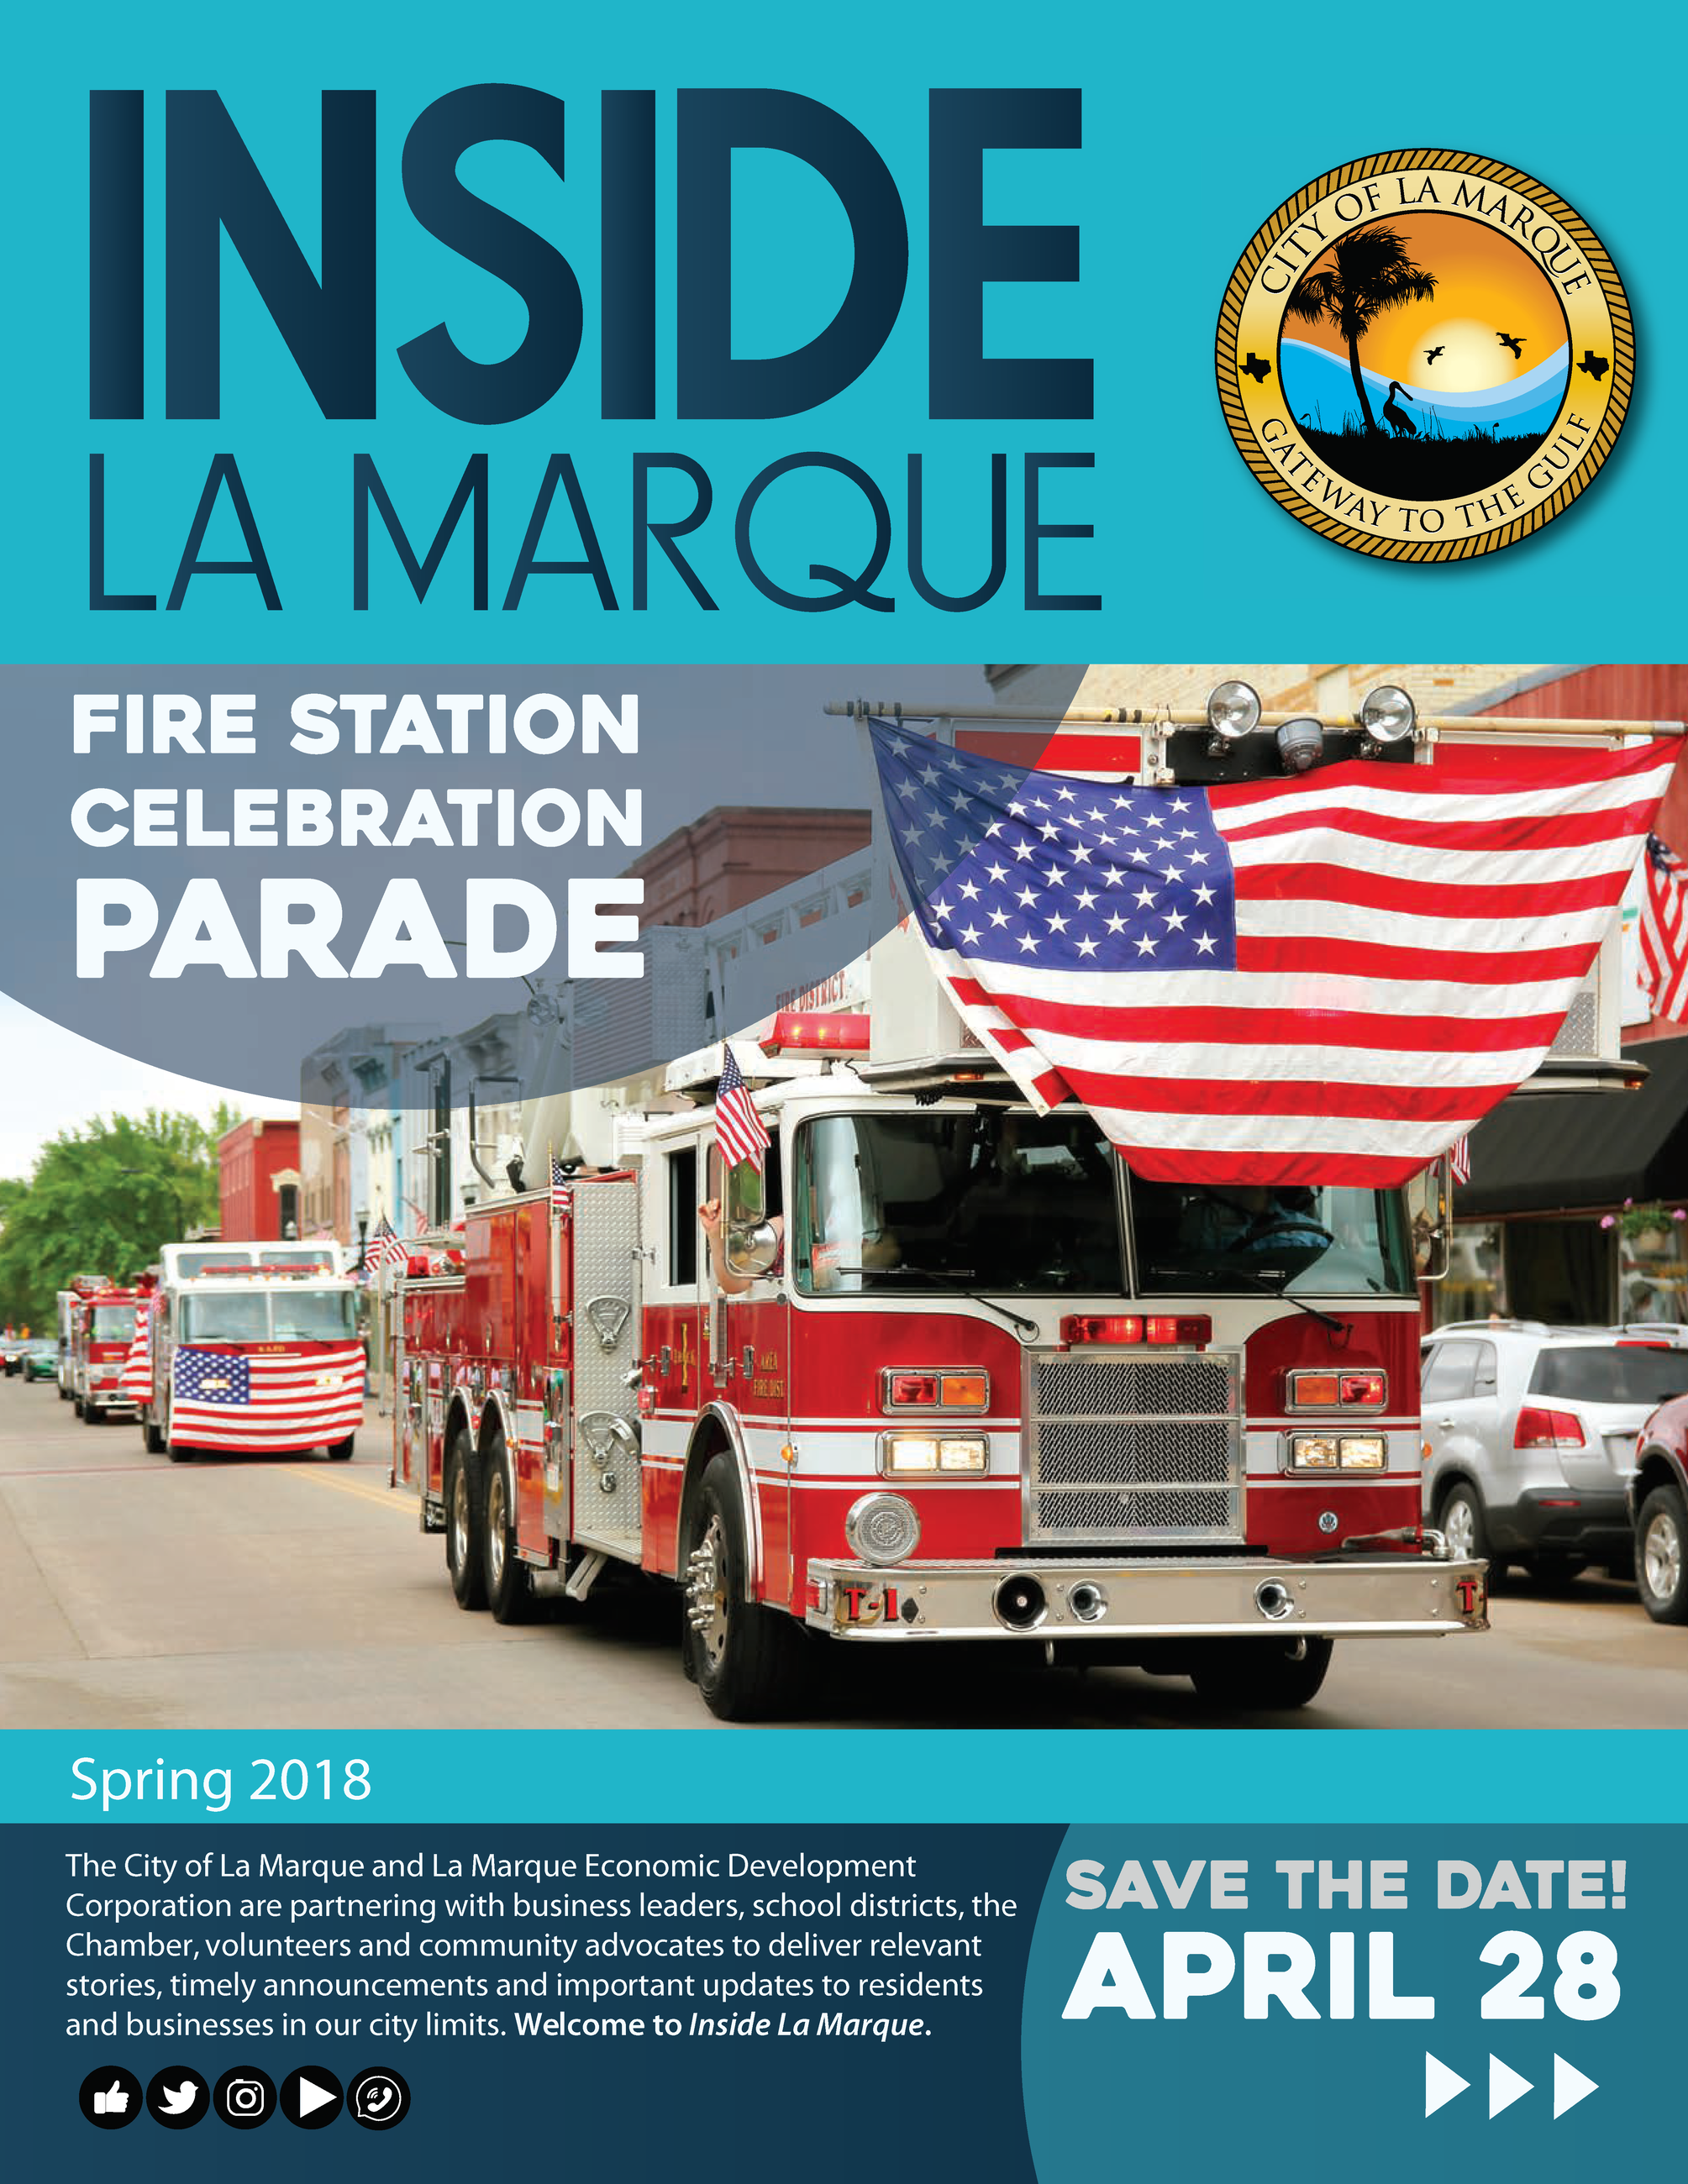 Pages from Inside La Marque Spring 2018